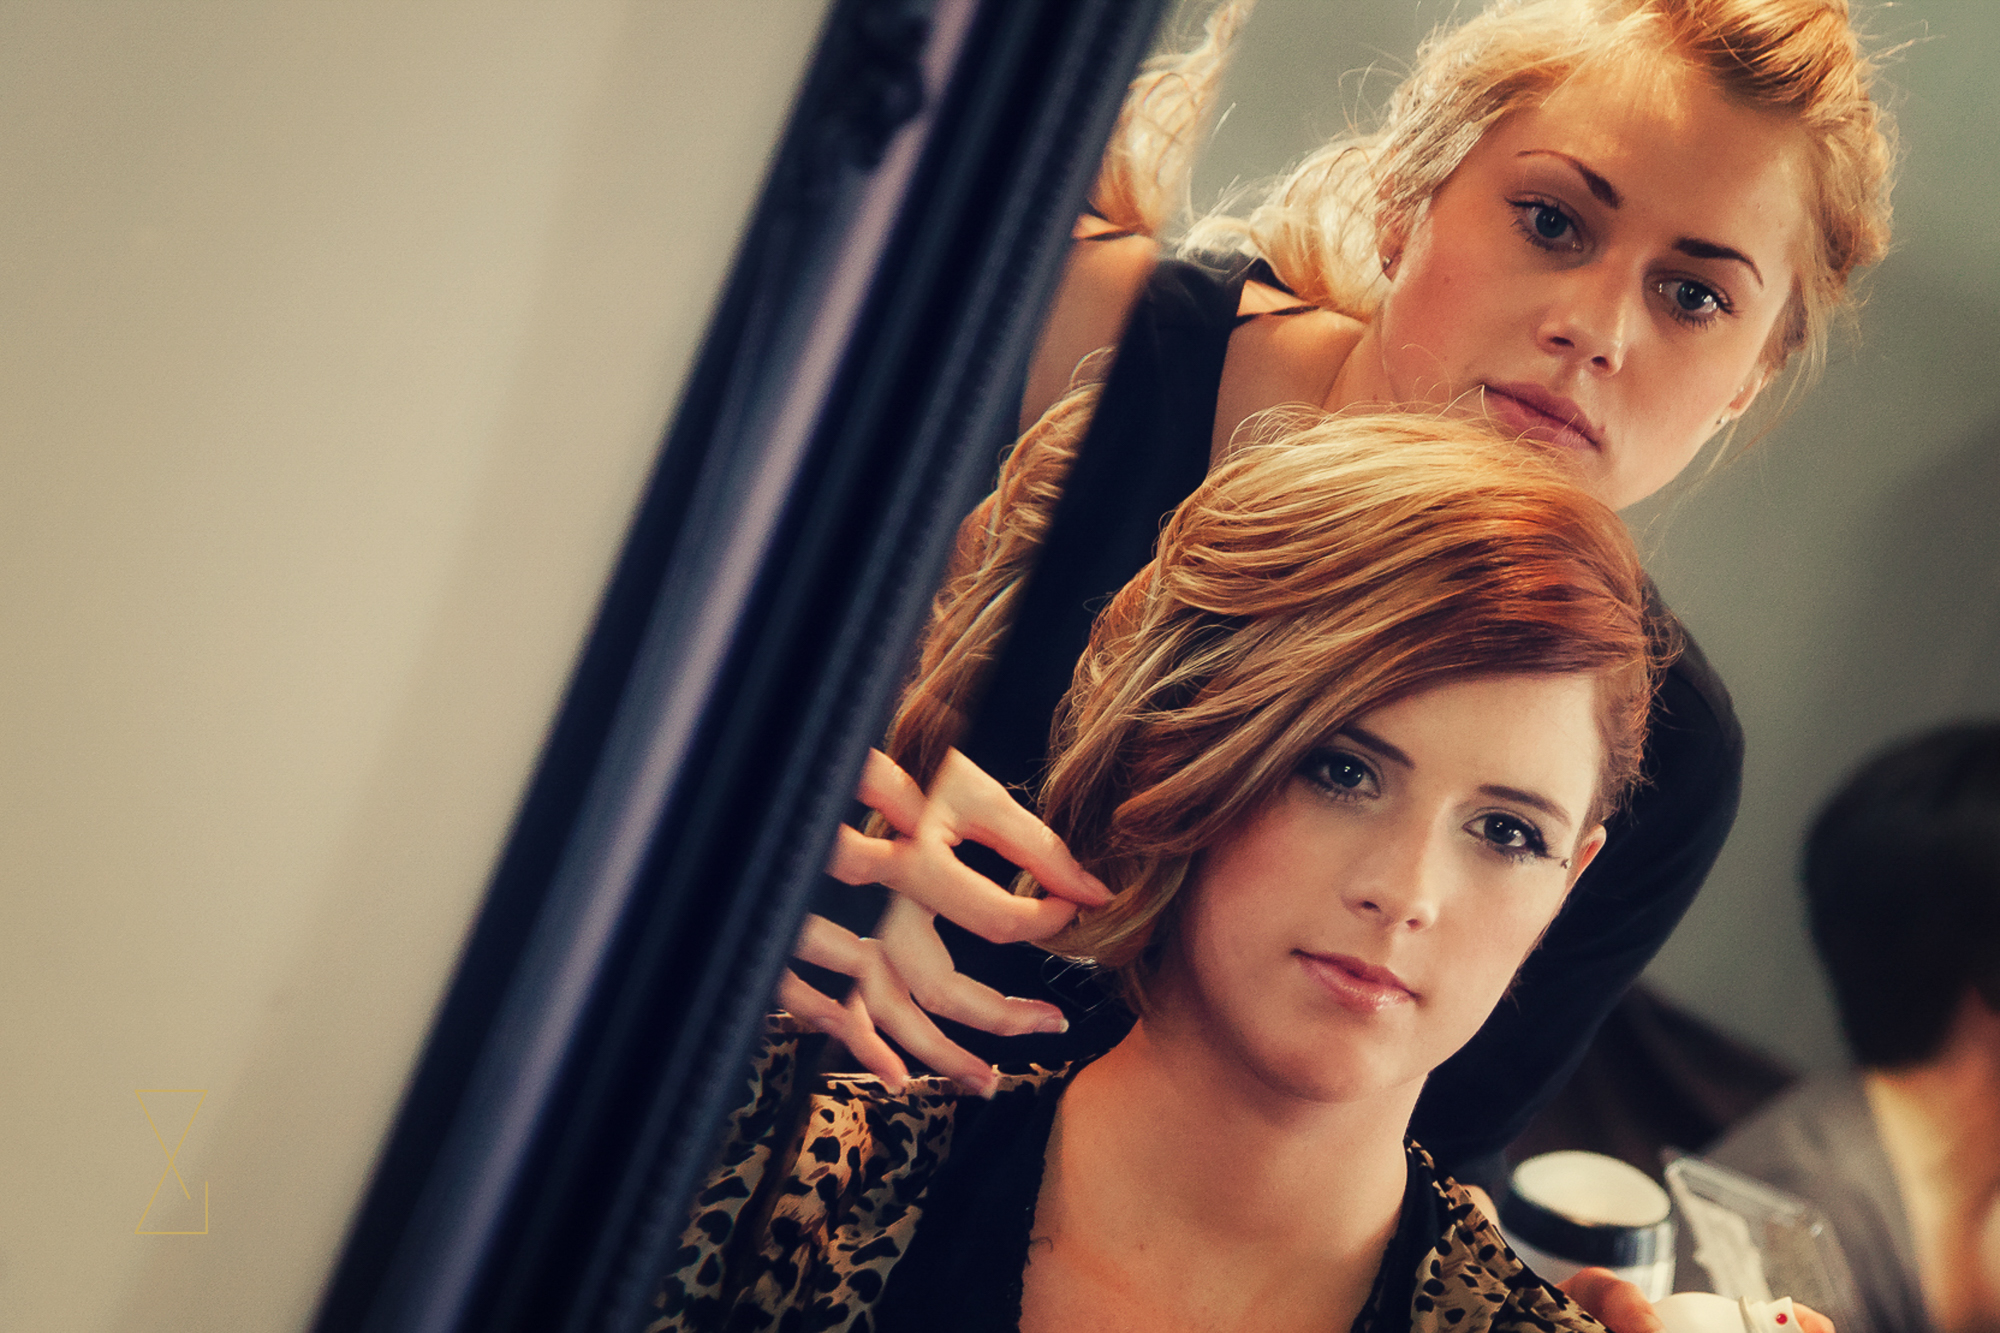 Bride to be at the salon on wedding morning, Evans & Evans wedding photography